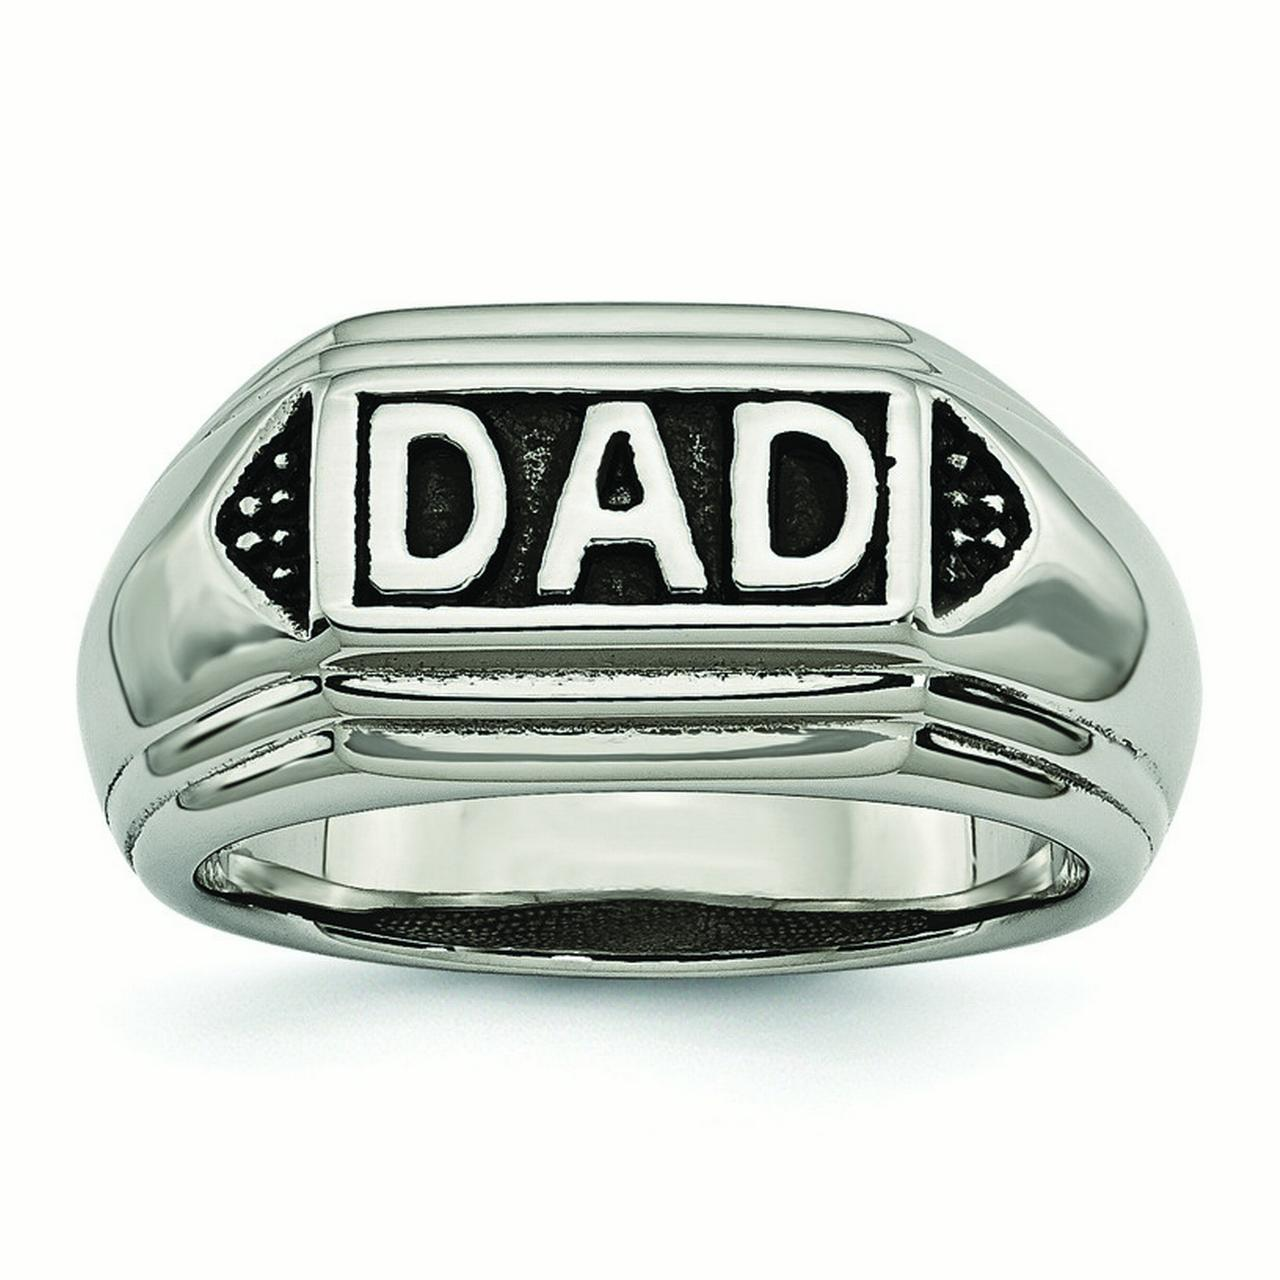 Stainless Steel Black Enamel Dad Ring - Ring Size Options:  10 11 12 9